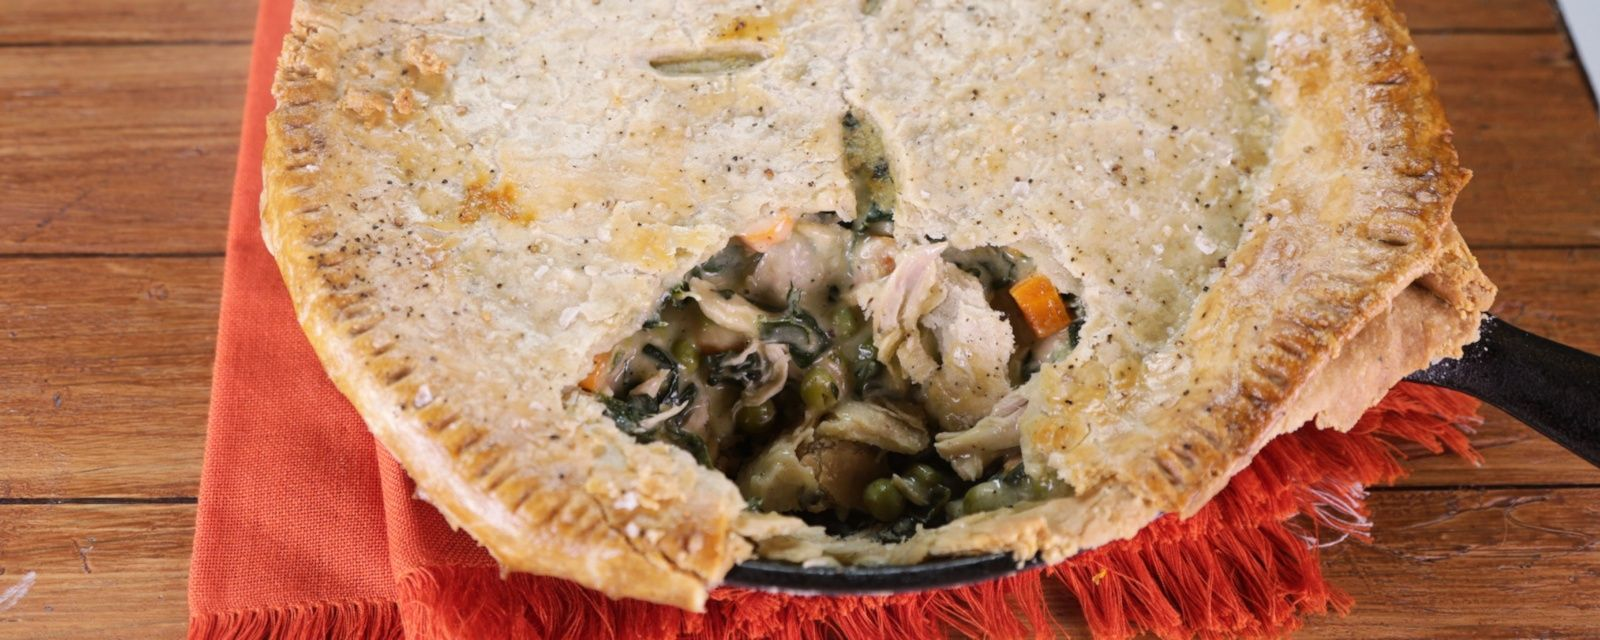 Add a little flare to your chicken pot pie with Clinton Kelly/s delicious salt and pepper crust!